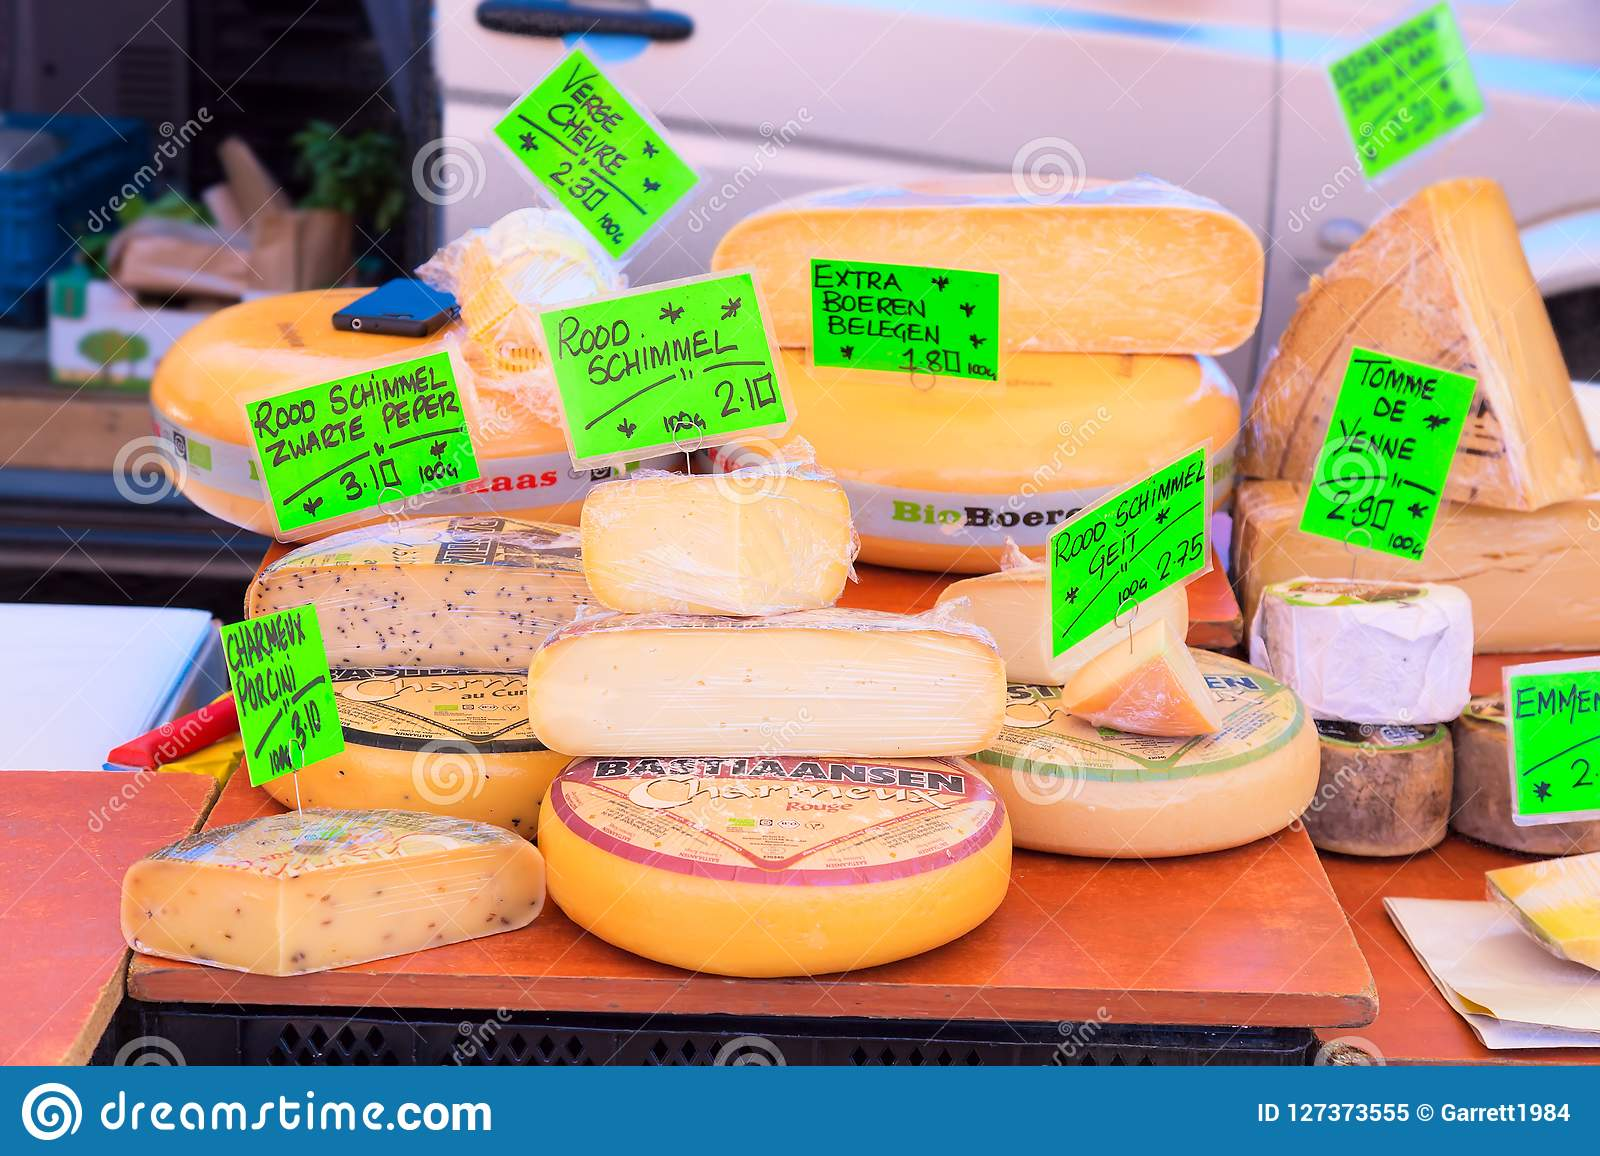 Amsterdam, Netherlands - May, 2018: Street market stall with cheese on the market in Amsterdam, Netherlands.